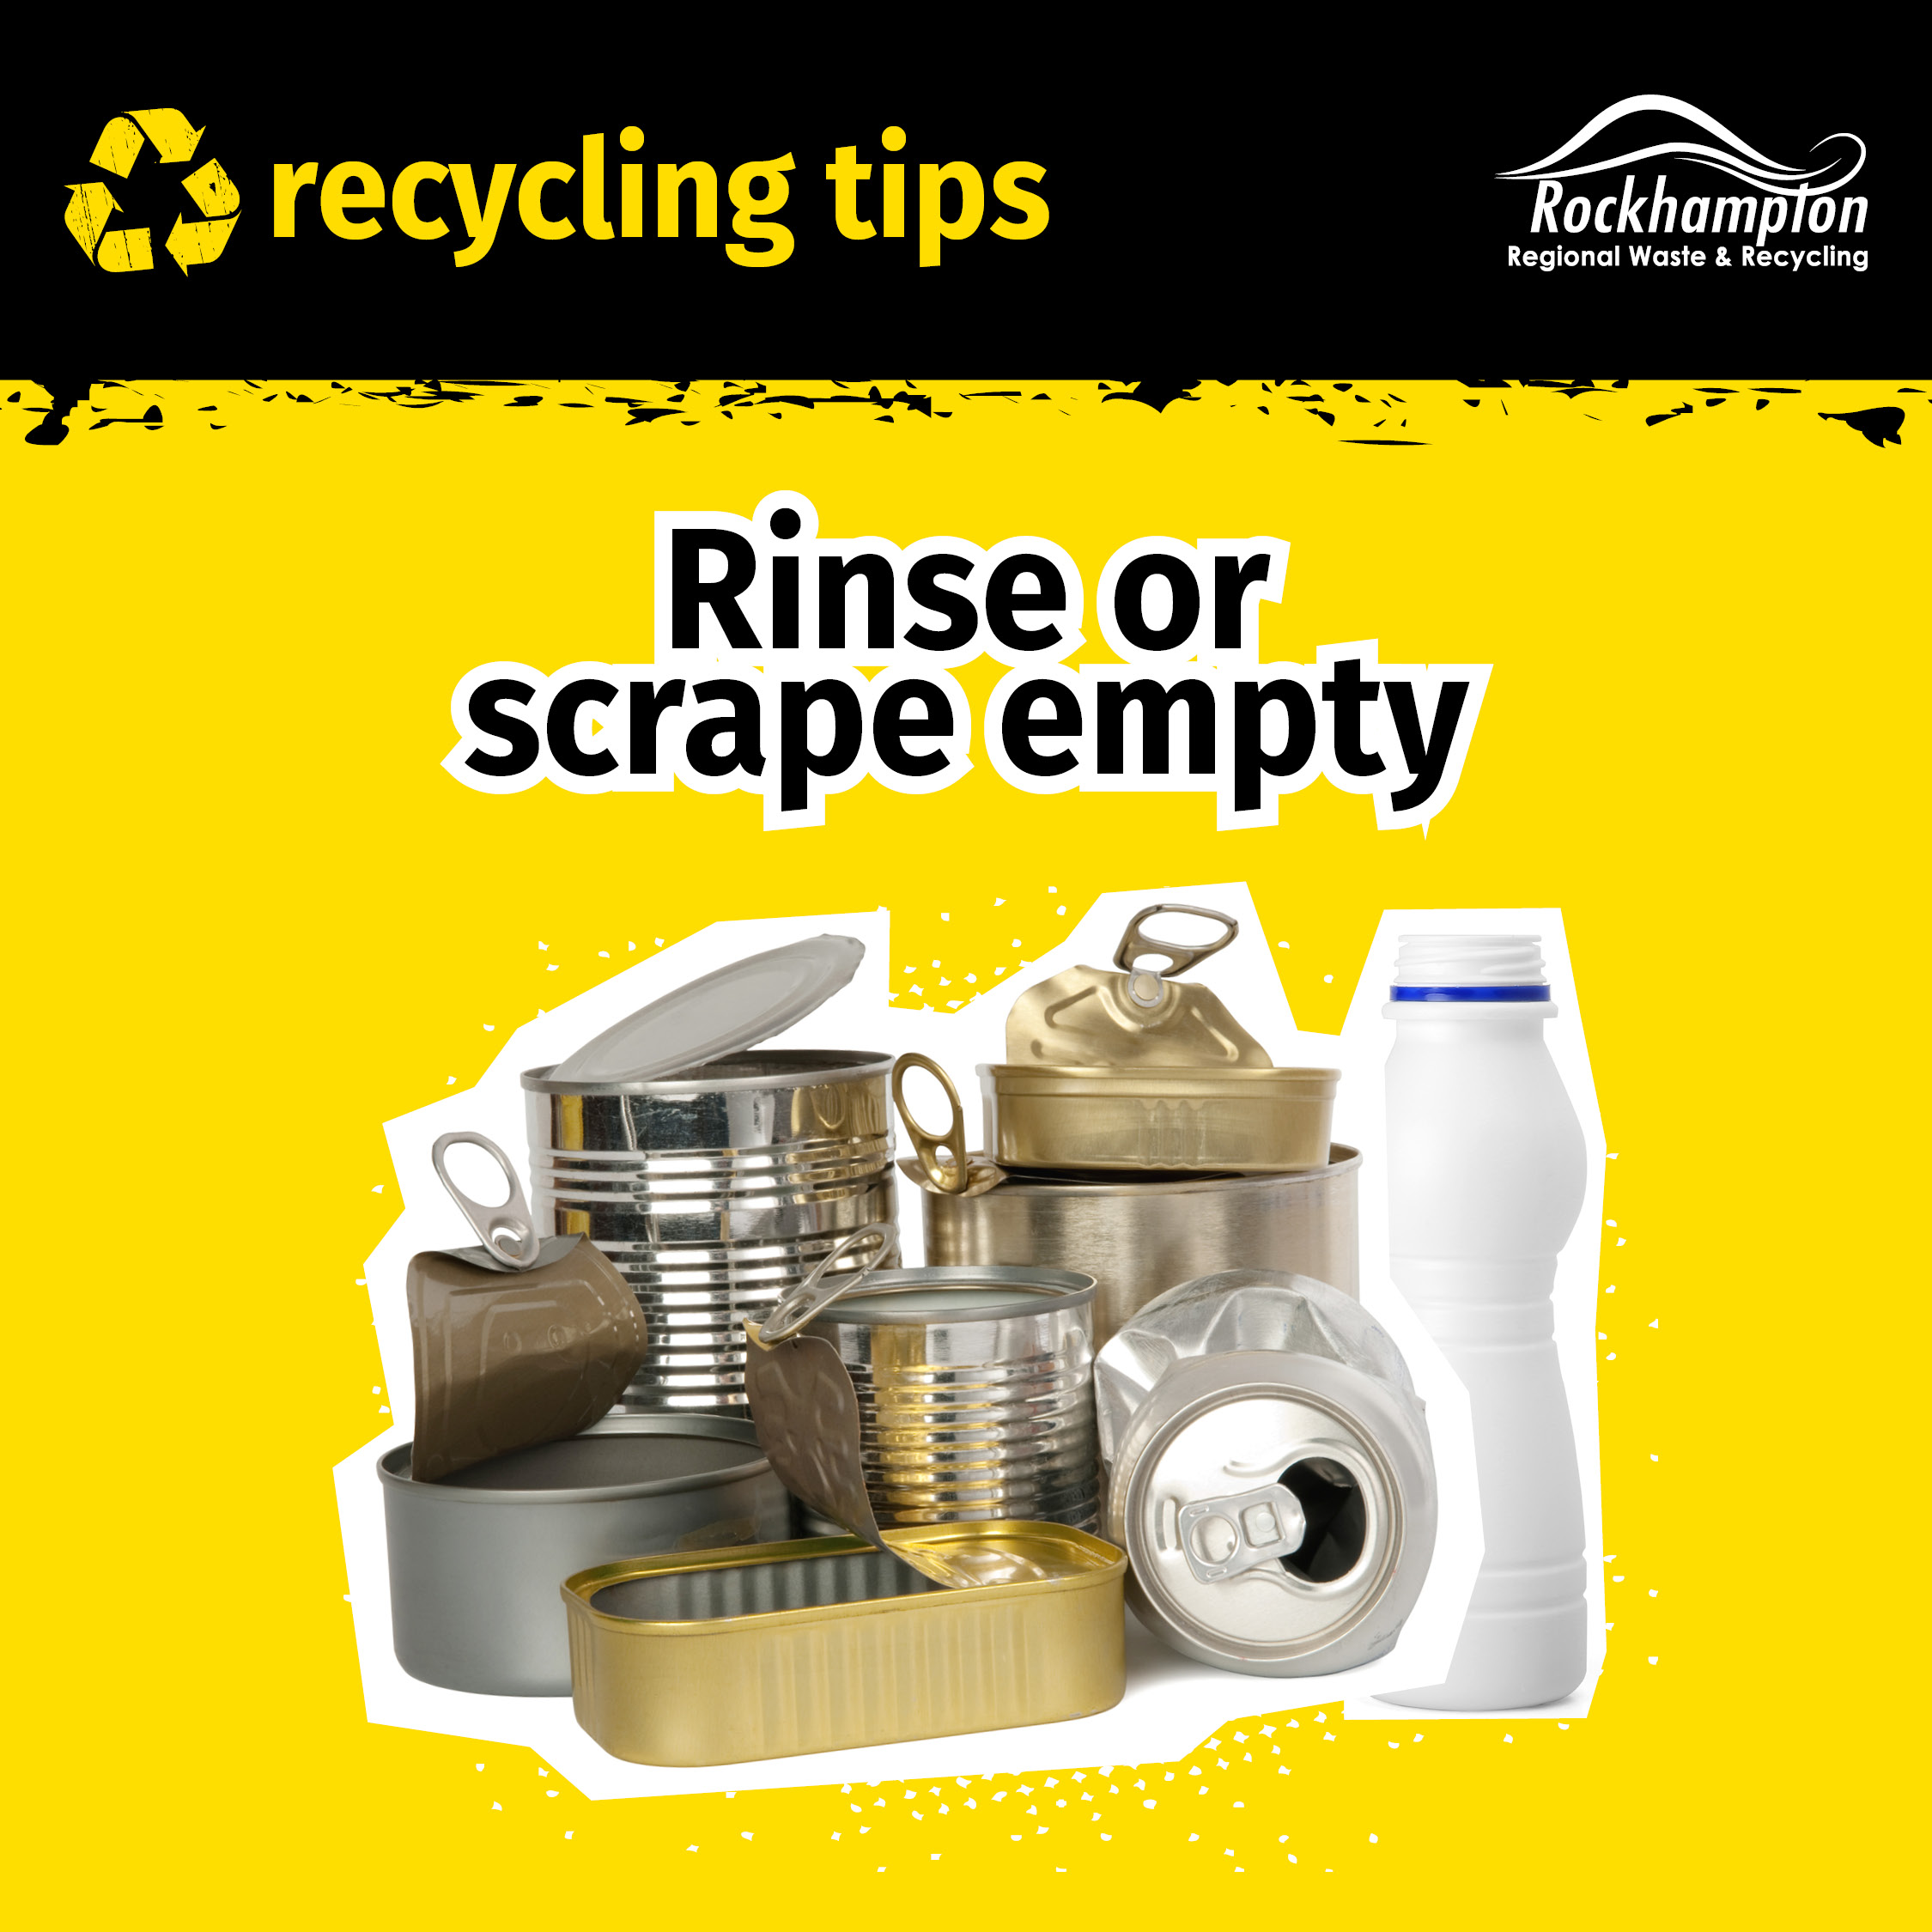 Recycling-Tips-1-Rinse-or-scrape-empty